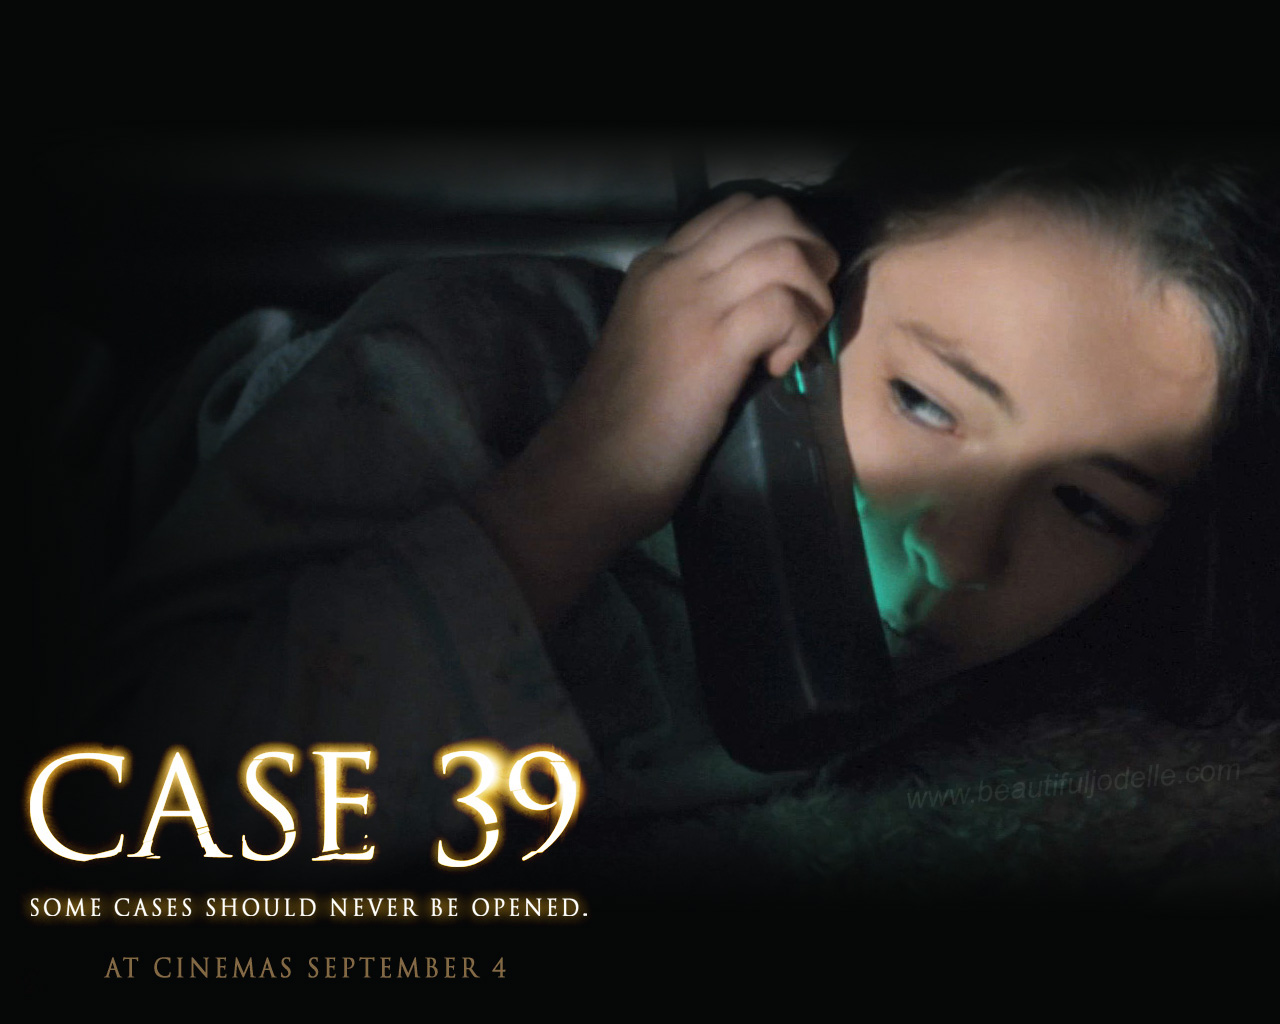 Jodelle Ferland Case 39 Wallpaper 1